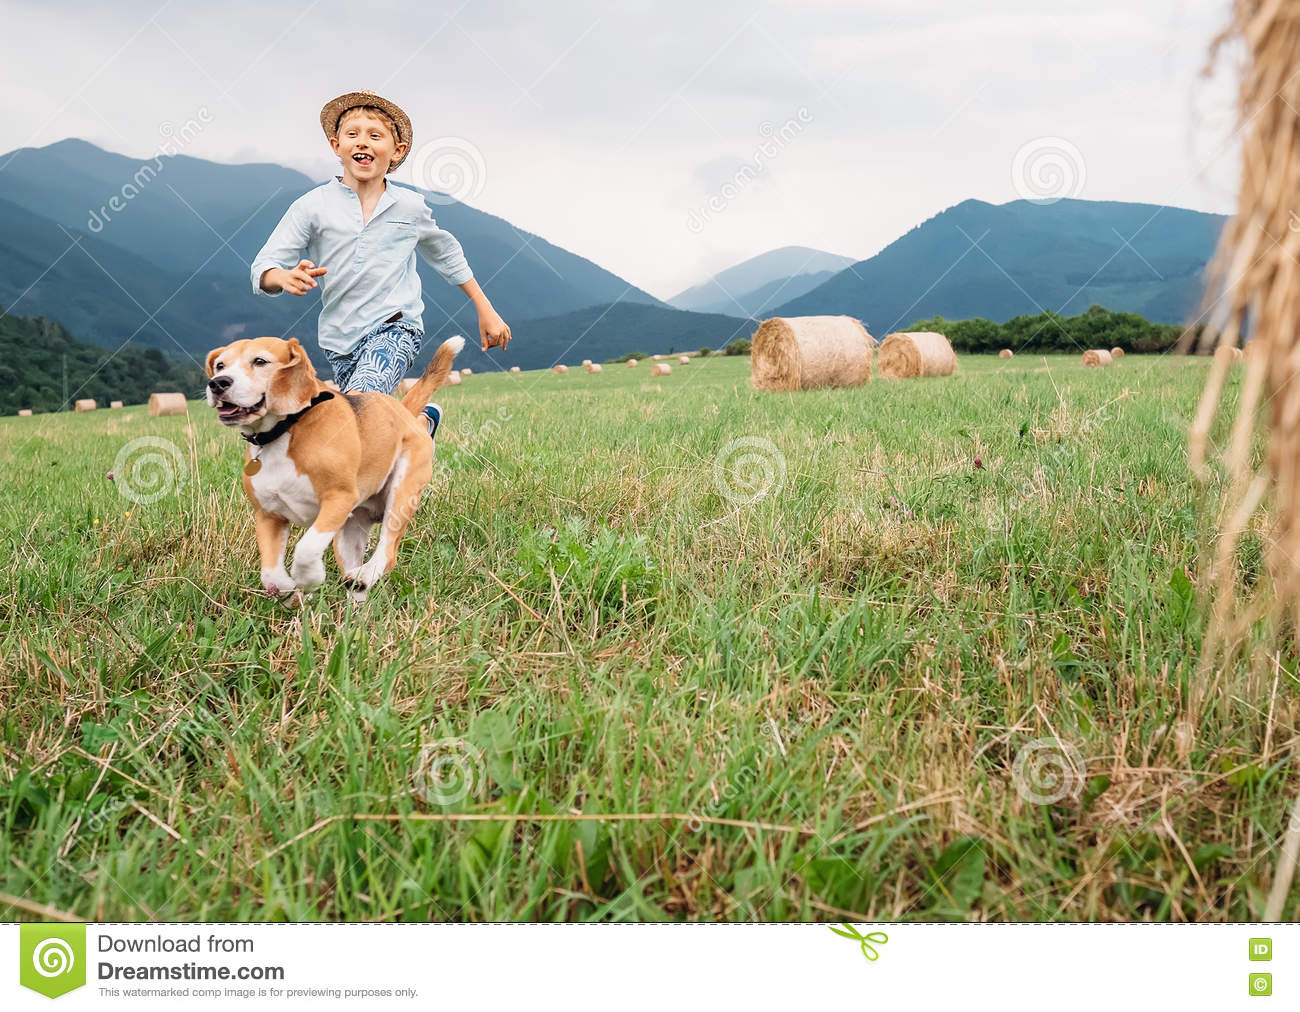 boy-dog-run-together-field-haystacks-746